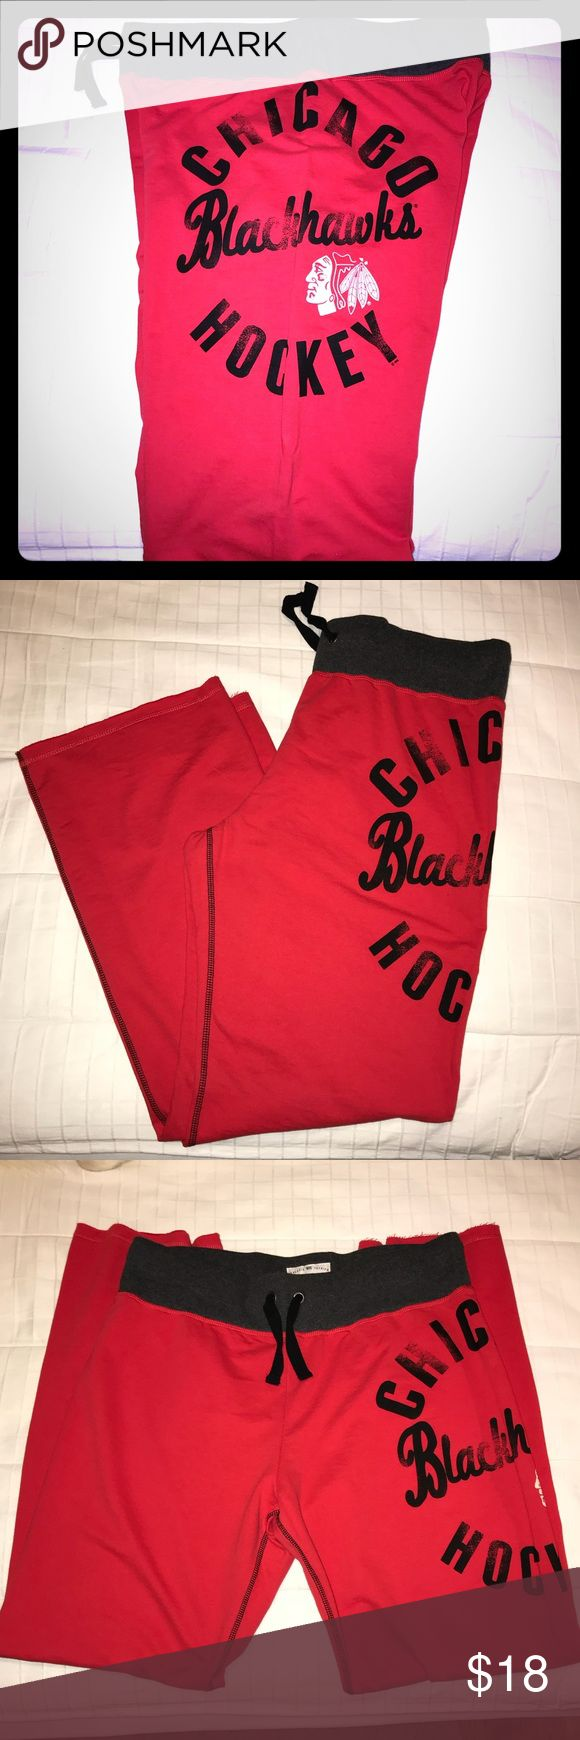 NHL Chicago Blackhawks Red Sweatpants Never worn, they've just been sitting in a drawer. Red sweatpants with Chicago Blackhawks written on the left side, nothing on the right. No pockets. Elastic waistband. Soft fabric. Bundle with another item for a discount or feel free to make an offer. No trades 😊 Majestic Pants